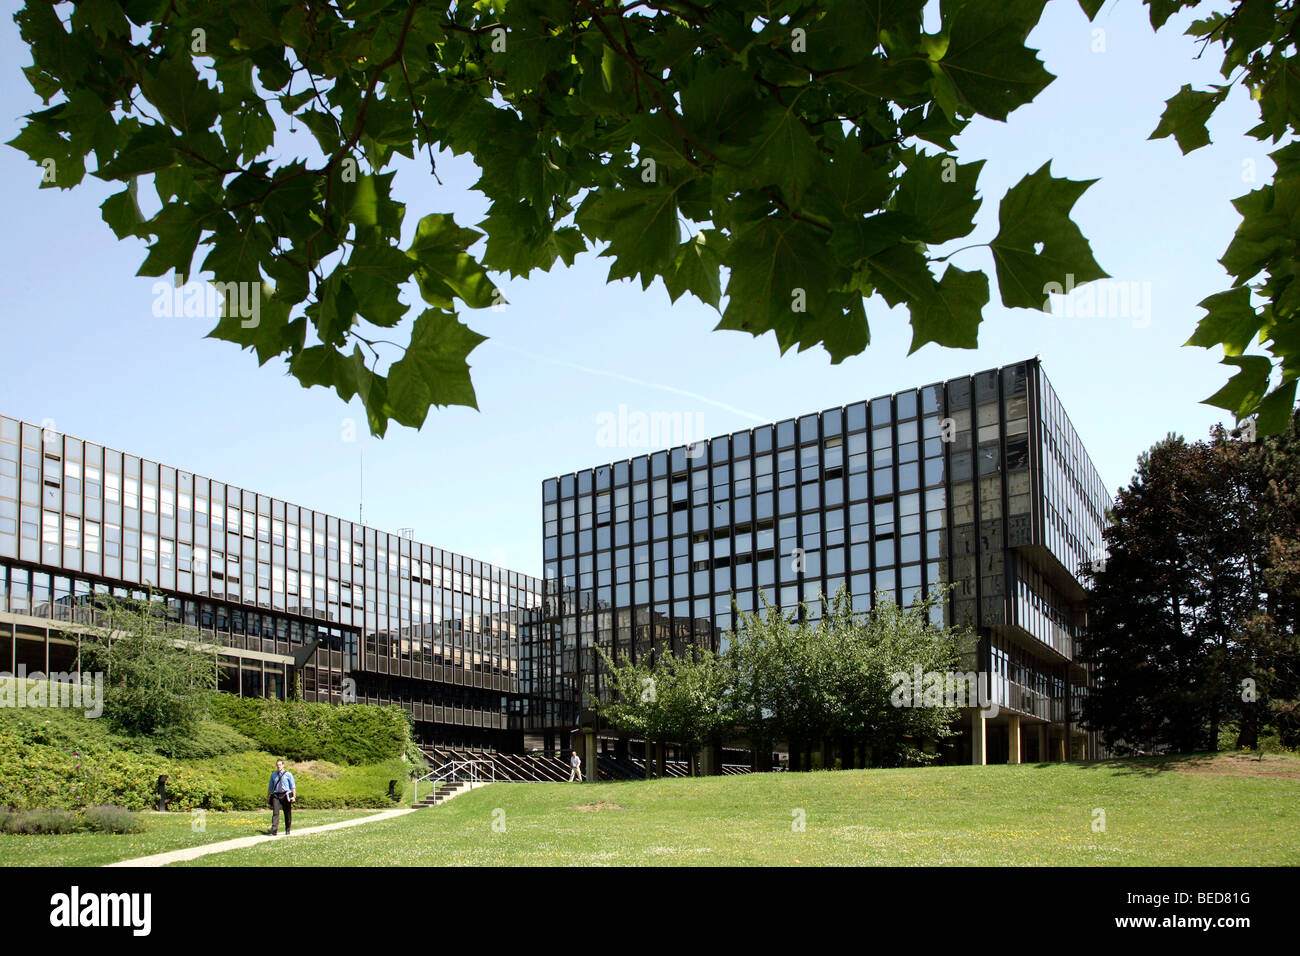 European Commission, Jean Monnet building, in Luxembourg, Europe - Stock Image